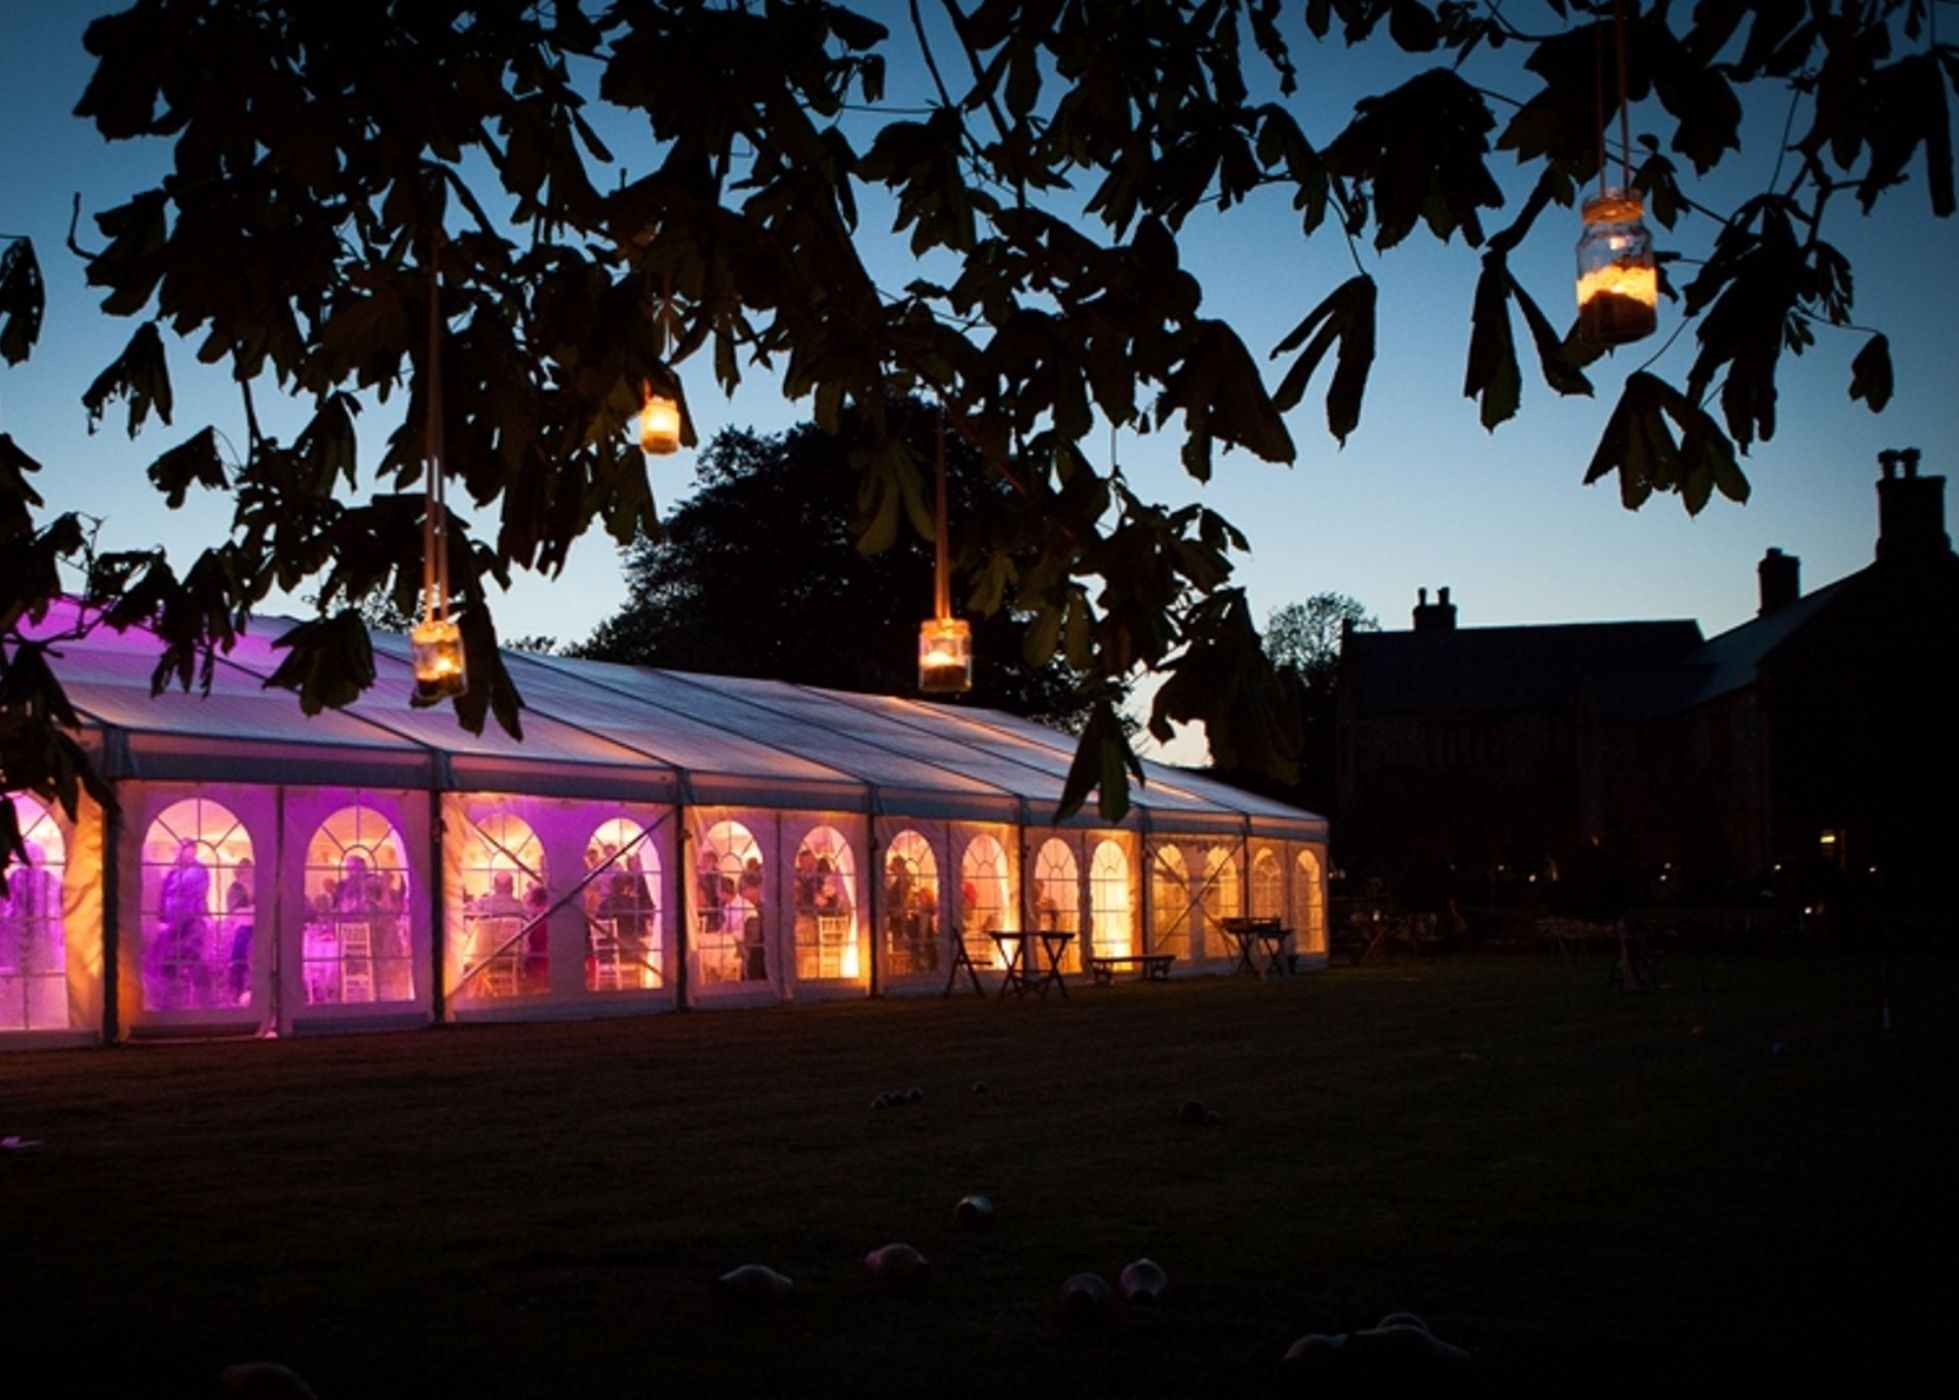 Exterior view of Wedding Marquee at Sheafhayne Manor in East Devon lit at night